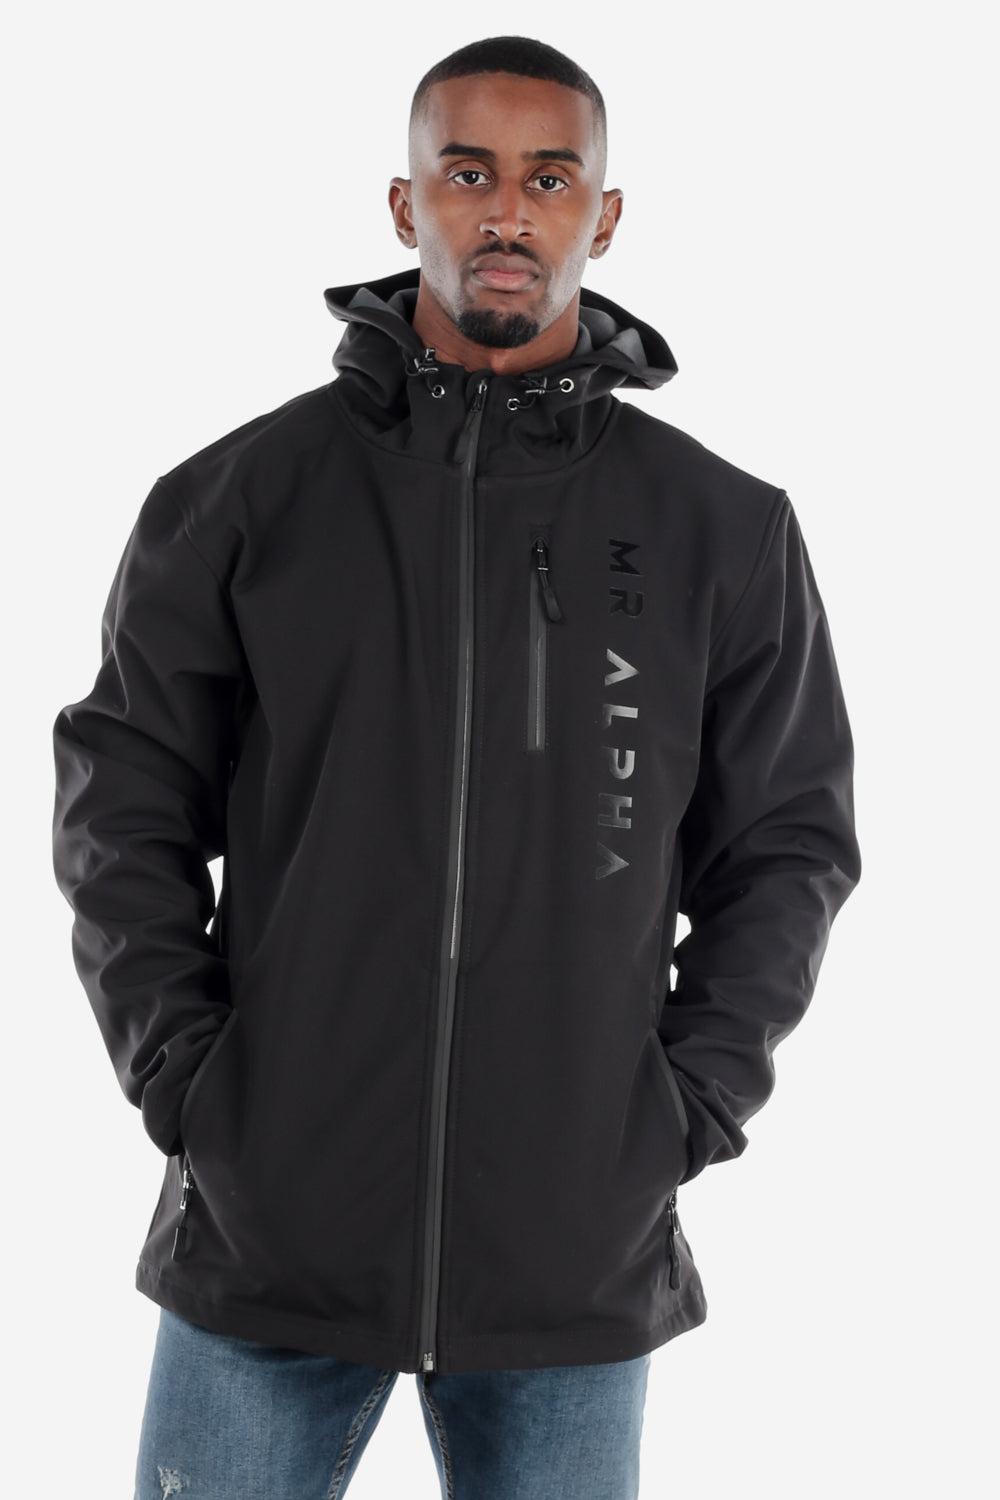 Fleece Lined Softshell Jacket - Black